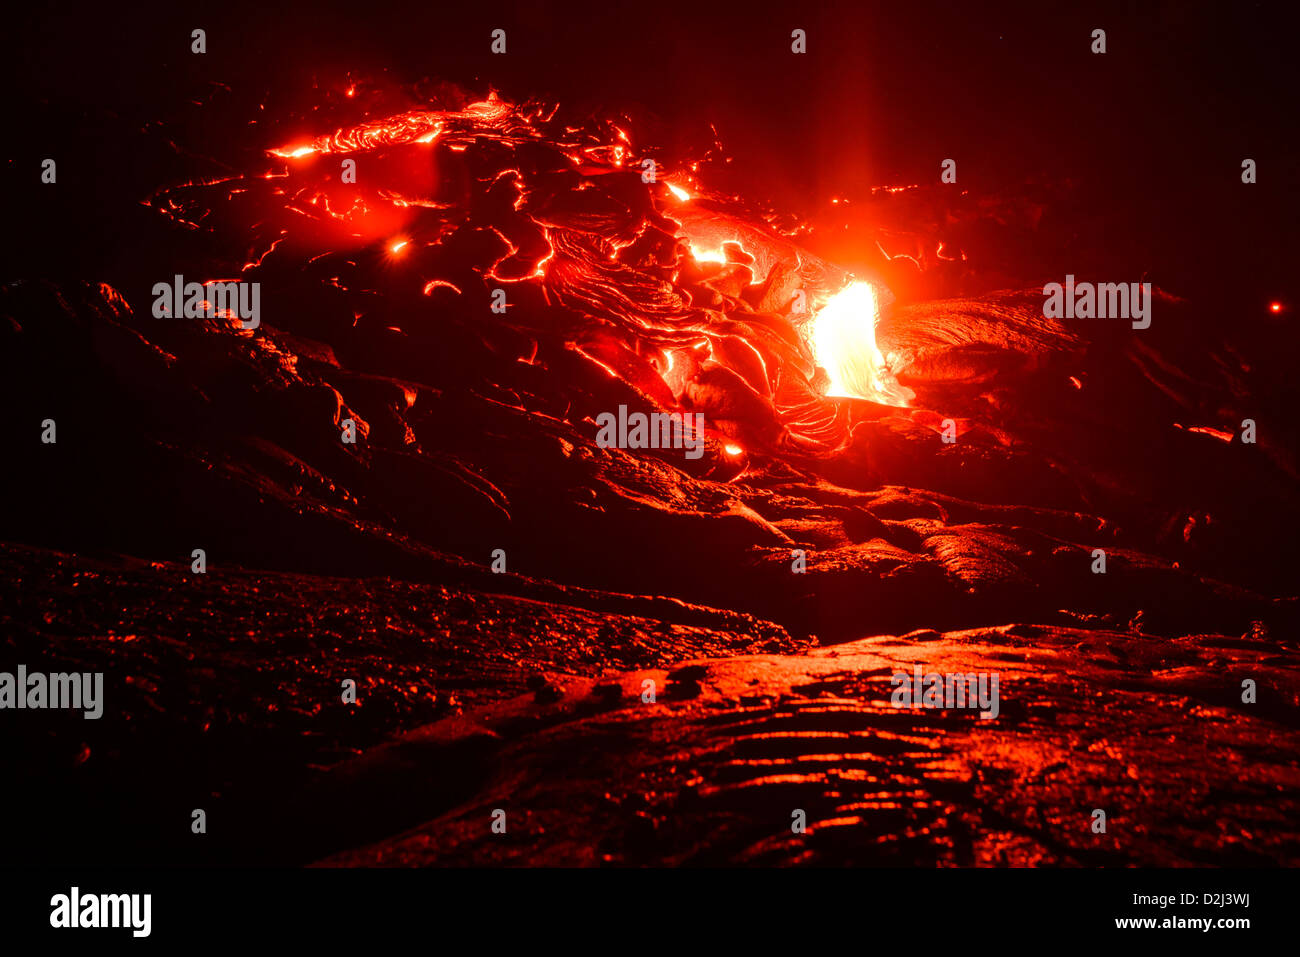 Lava flowing from a vent in Kilauea Volcano, Big Island, Hawaii - Stock Image